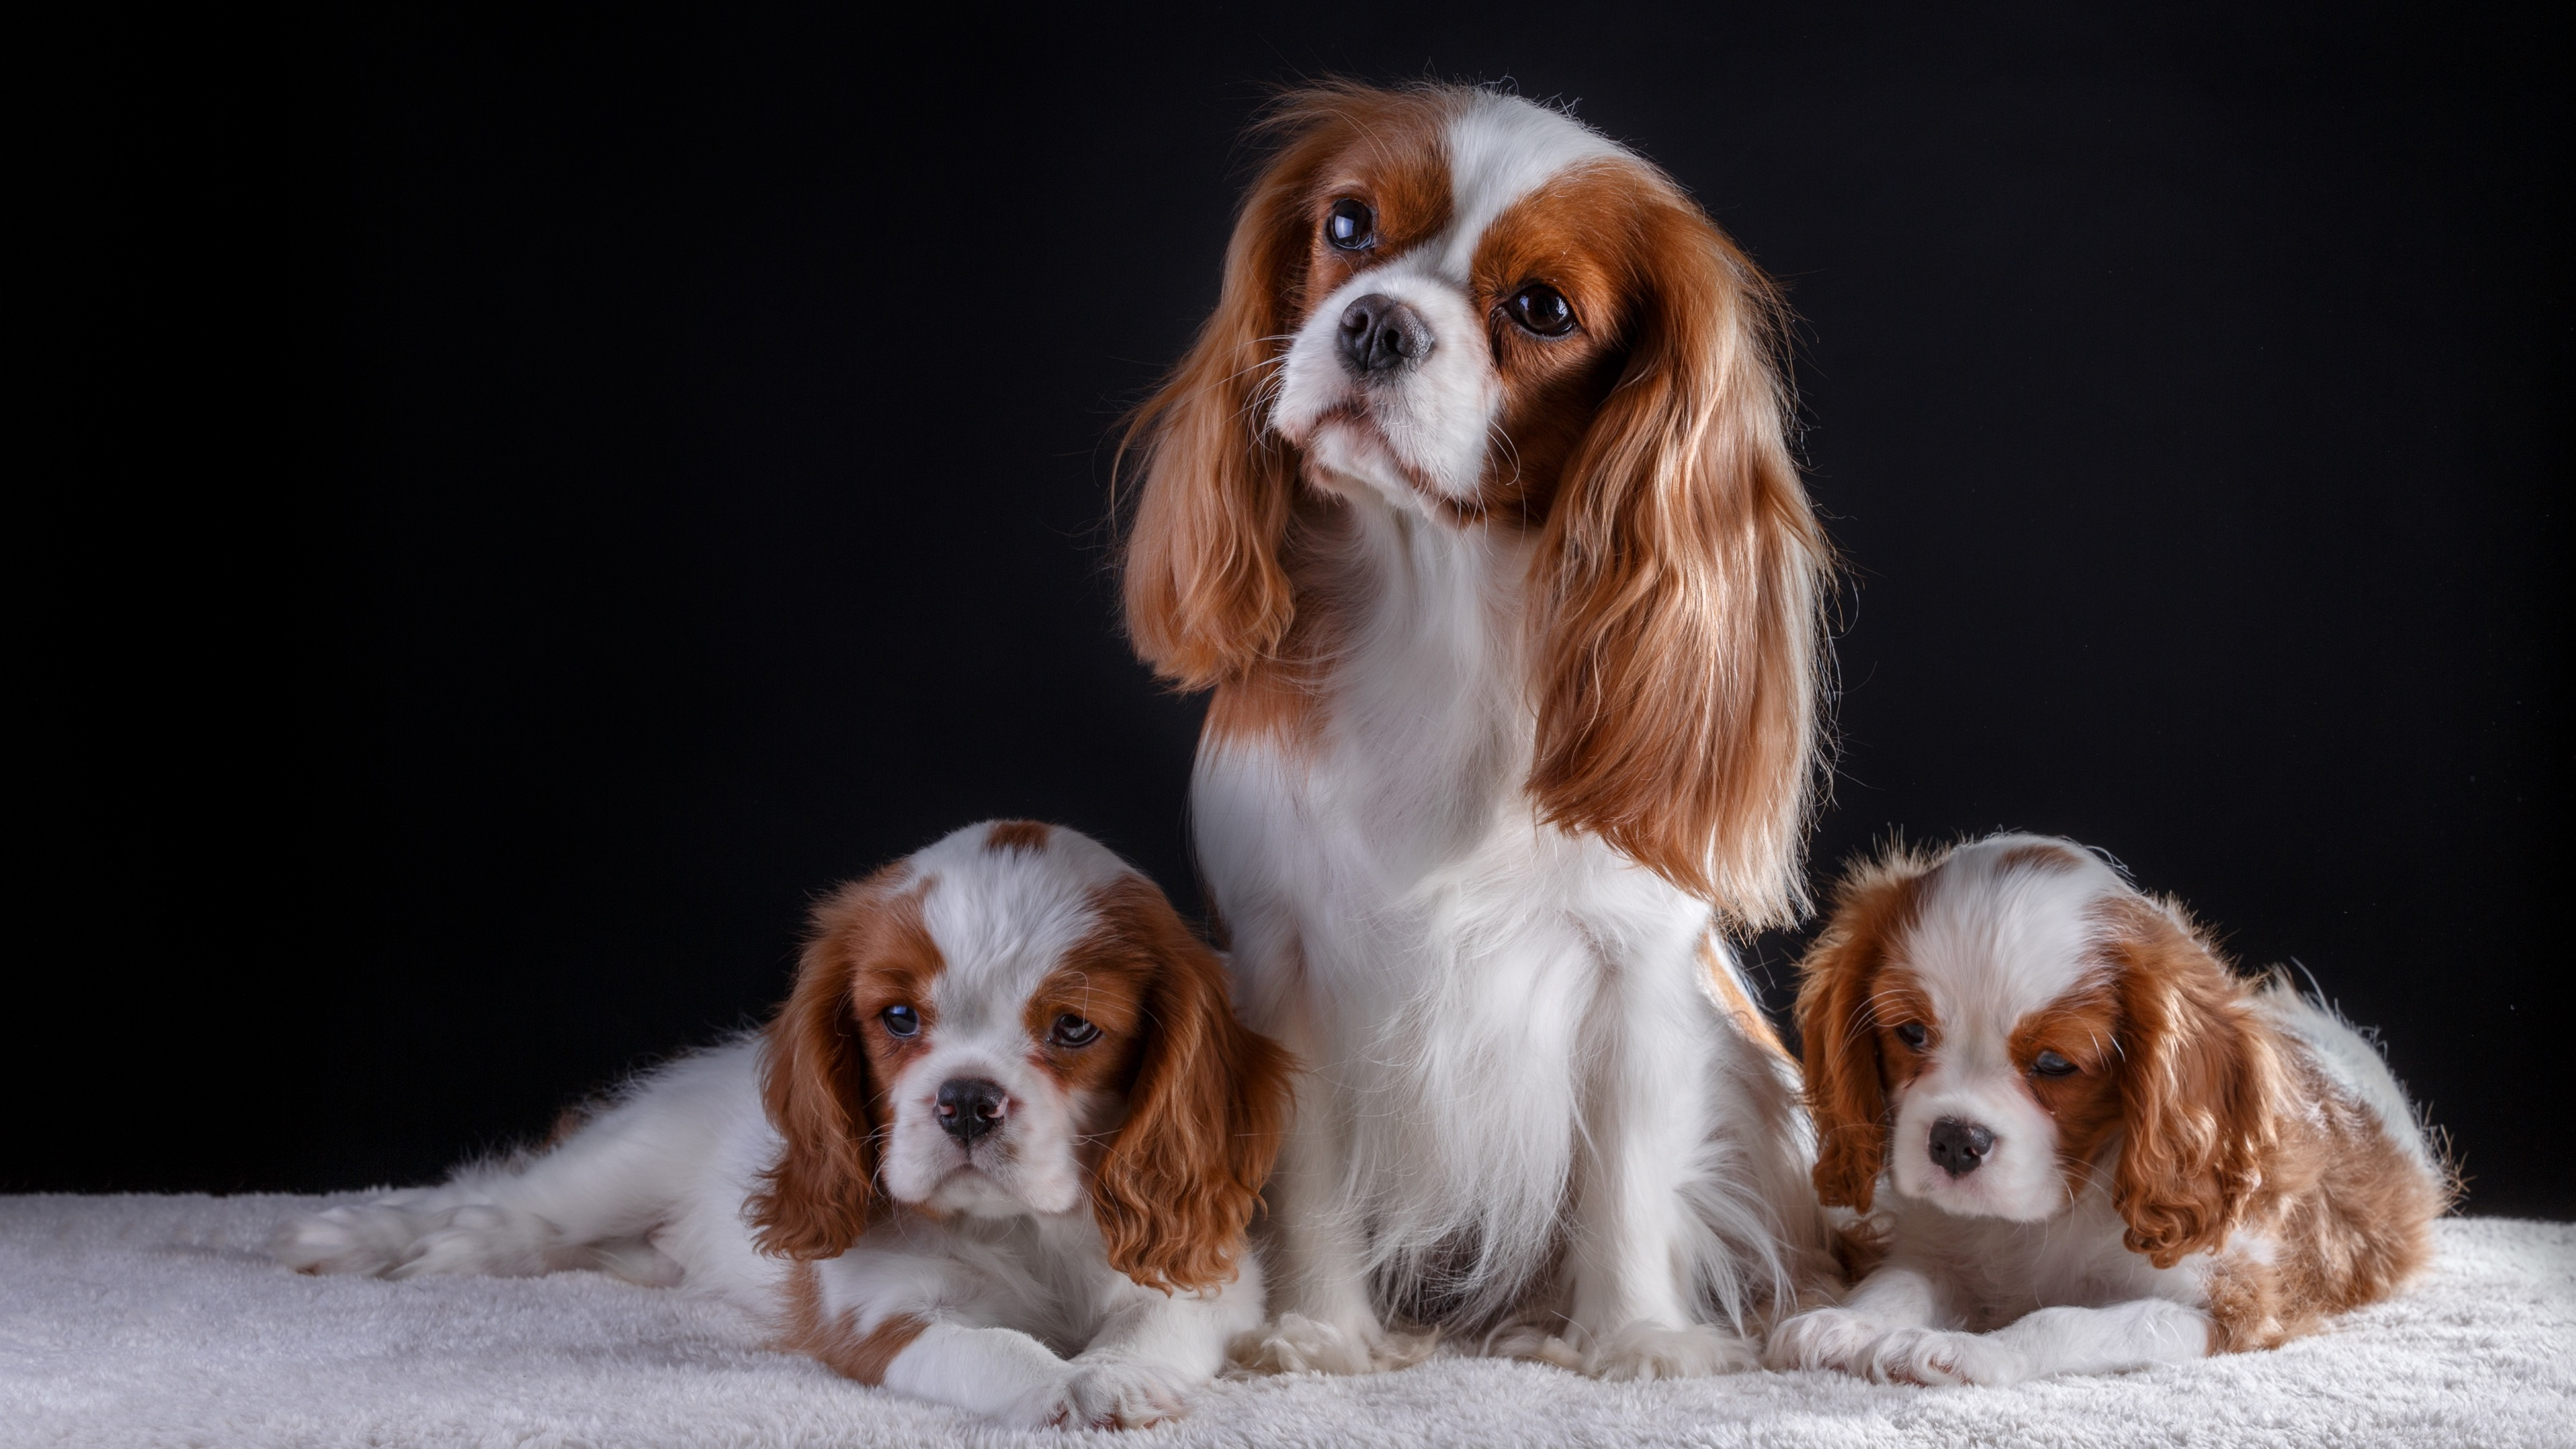 Wallpaper Three Dogs Cute Pets 3840x2160 Uhd 4k Picture Image